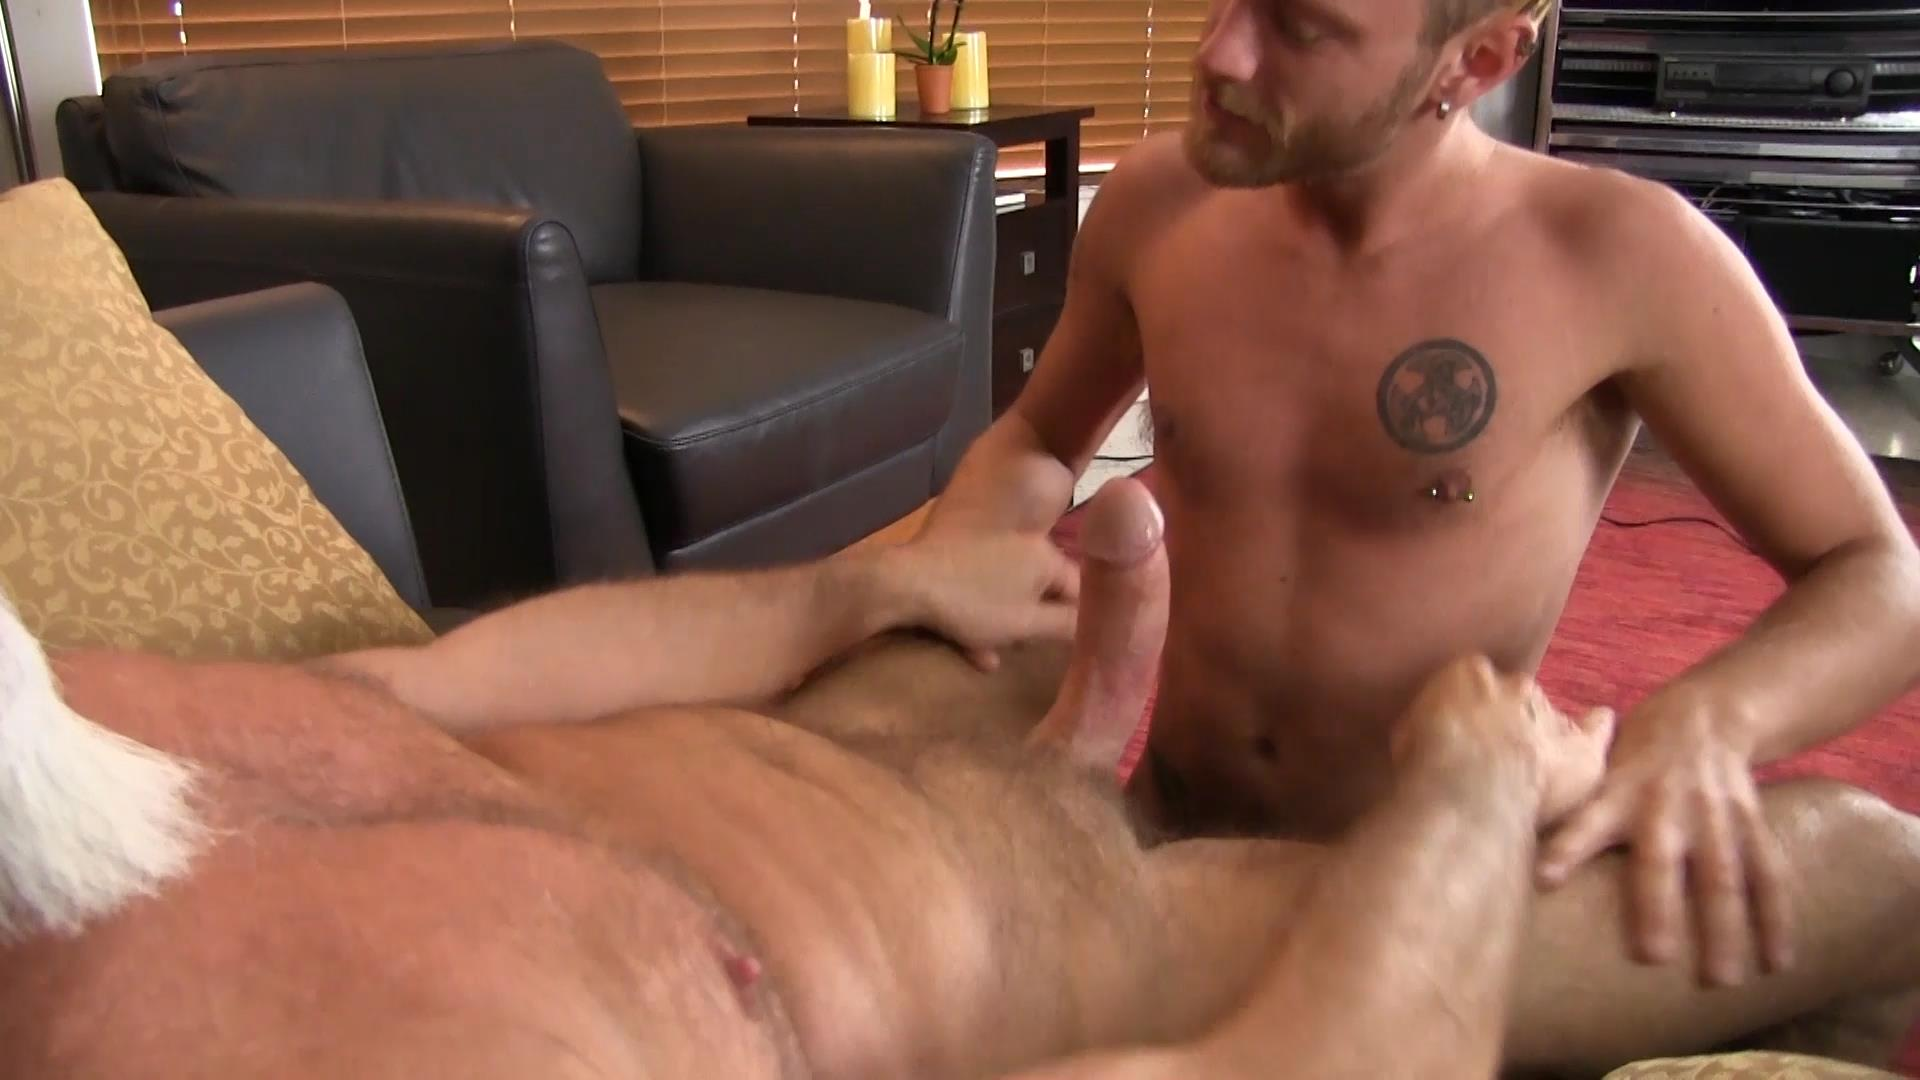 Bareback-Me-Daddy-Silver-Daddy-Barebacks-Younger-Guy-Amateur-Gay-Porn-05 Getting Barebacked By A Thick Daddy Dick